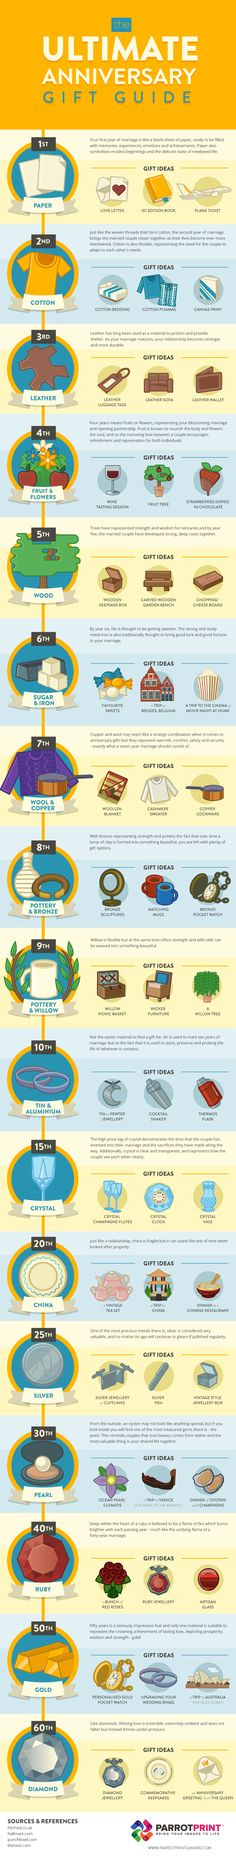 Infographic The Ultimate Anniversary Gift Guide